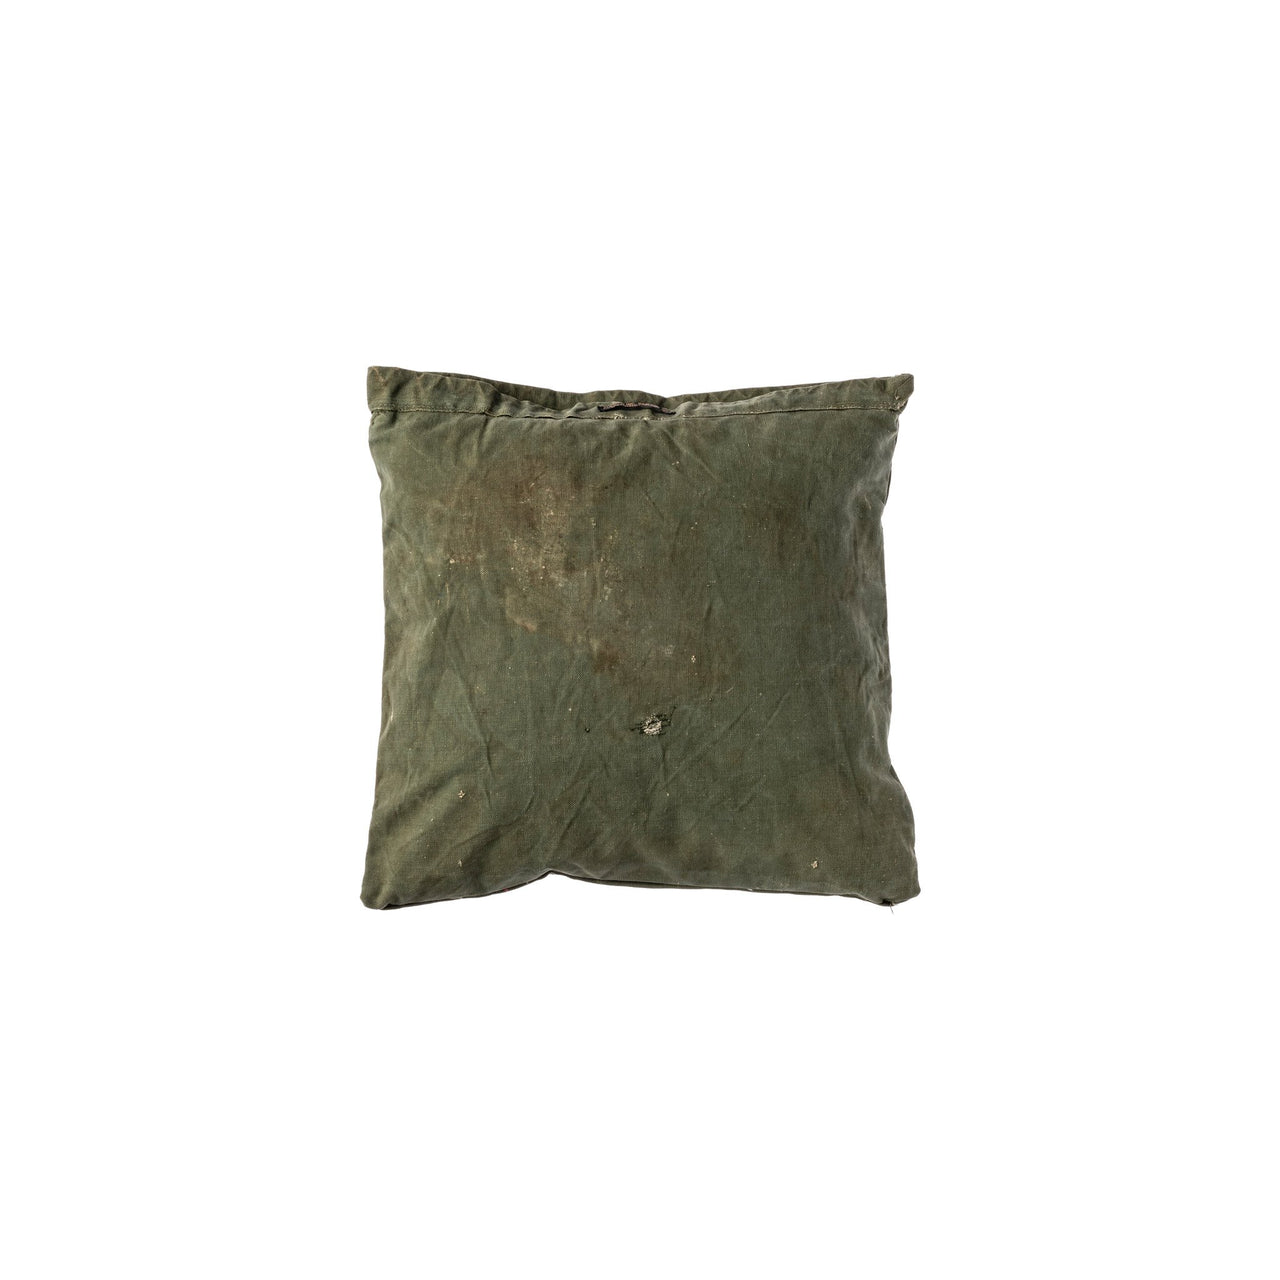 Vintage Material Cushion Cover 45x45